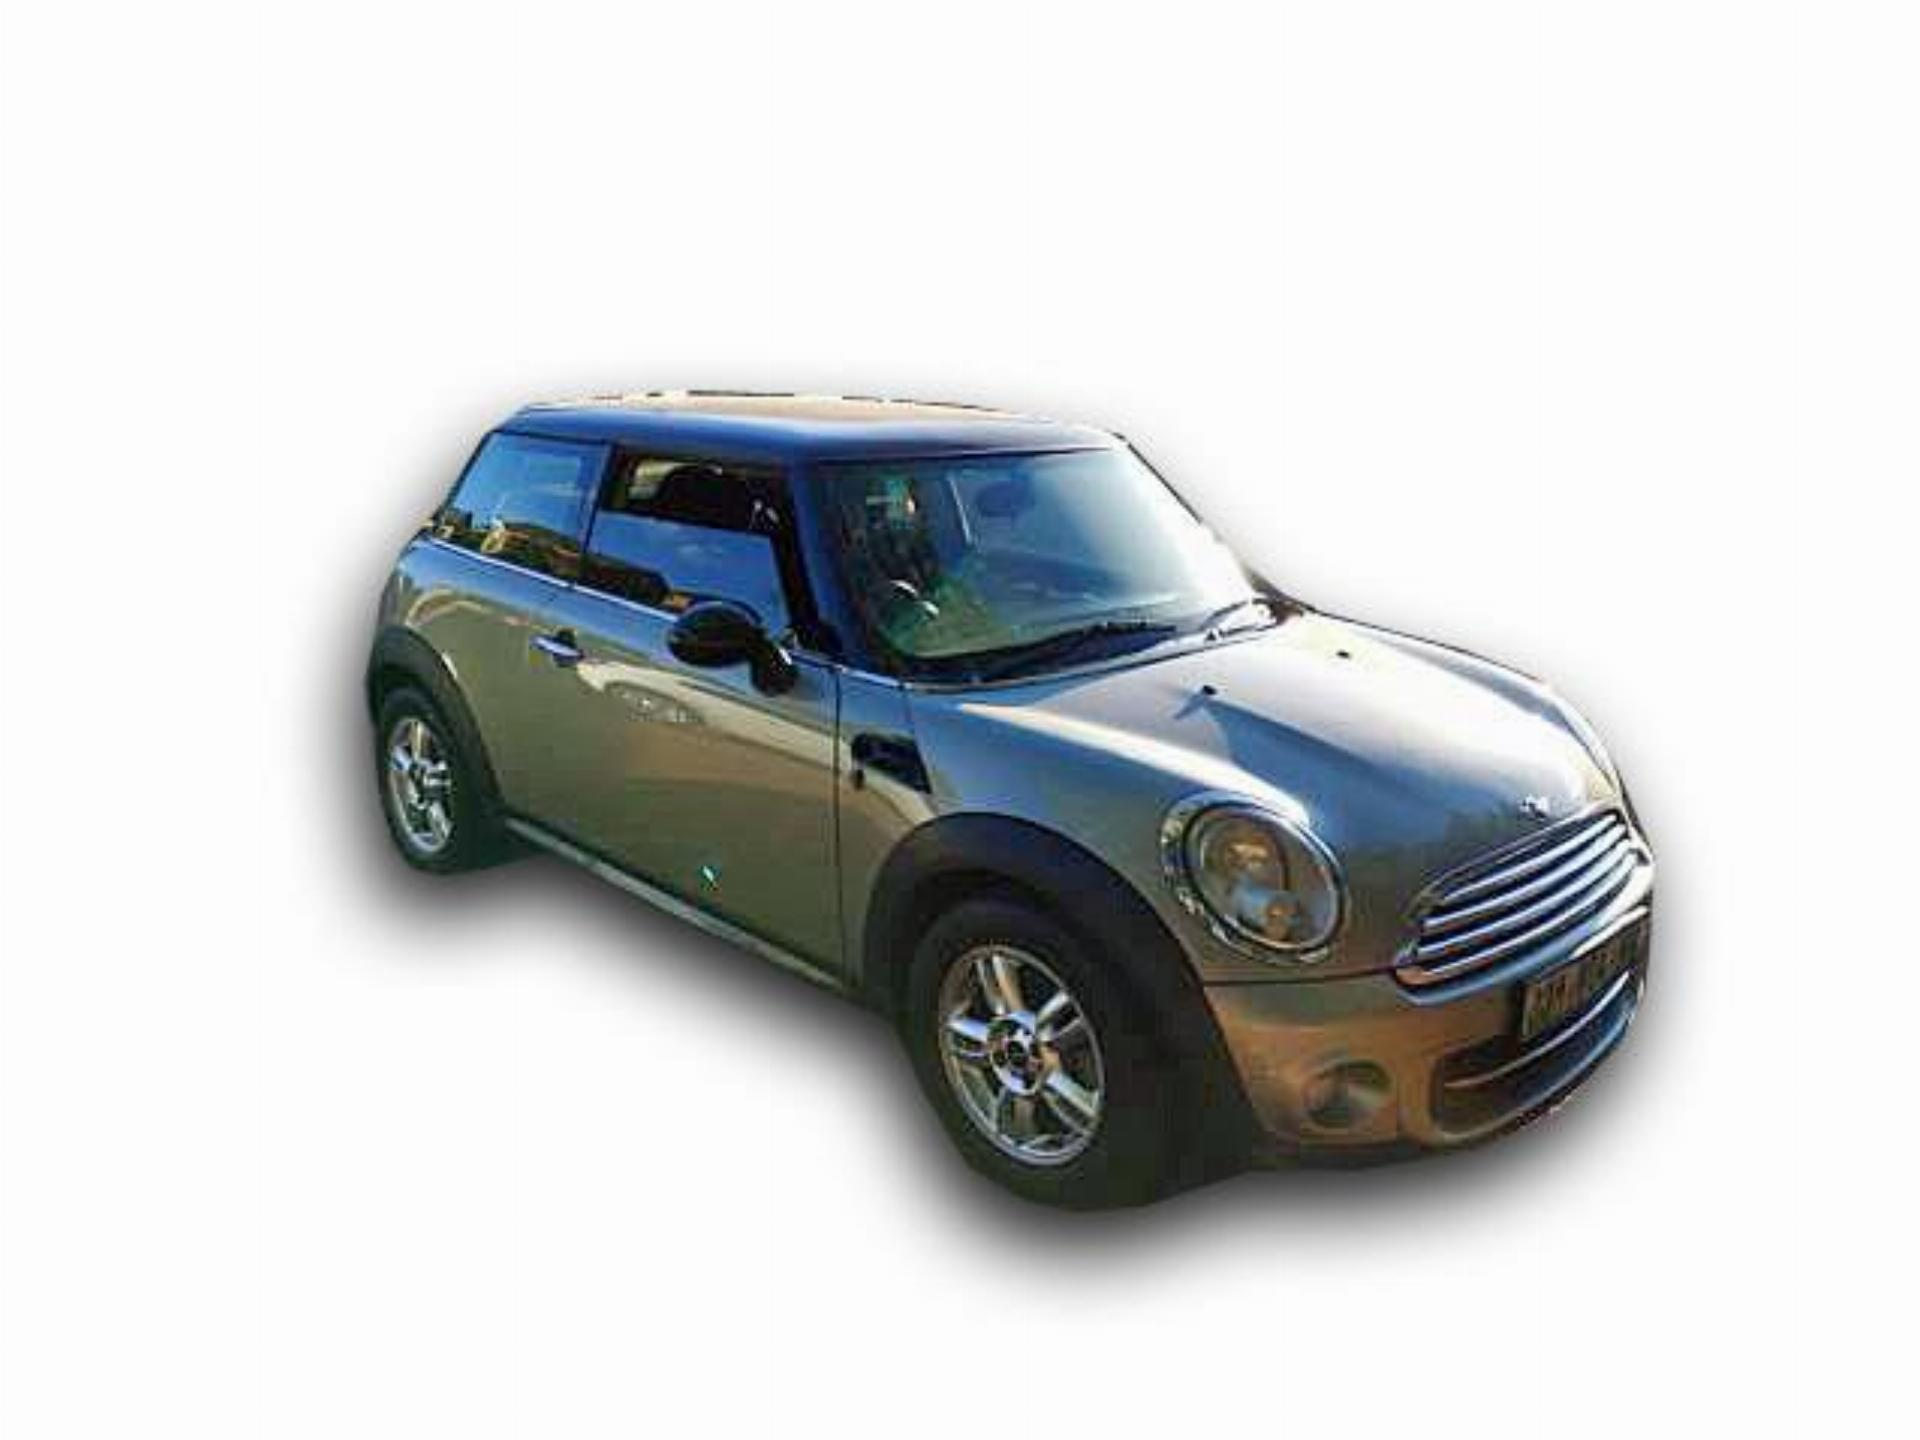 2011 Mini Cooper 1.6 Hatchback